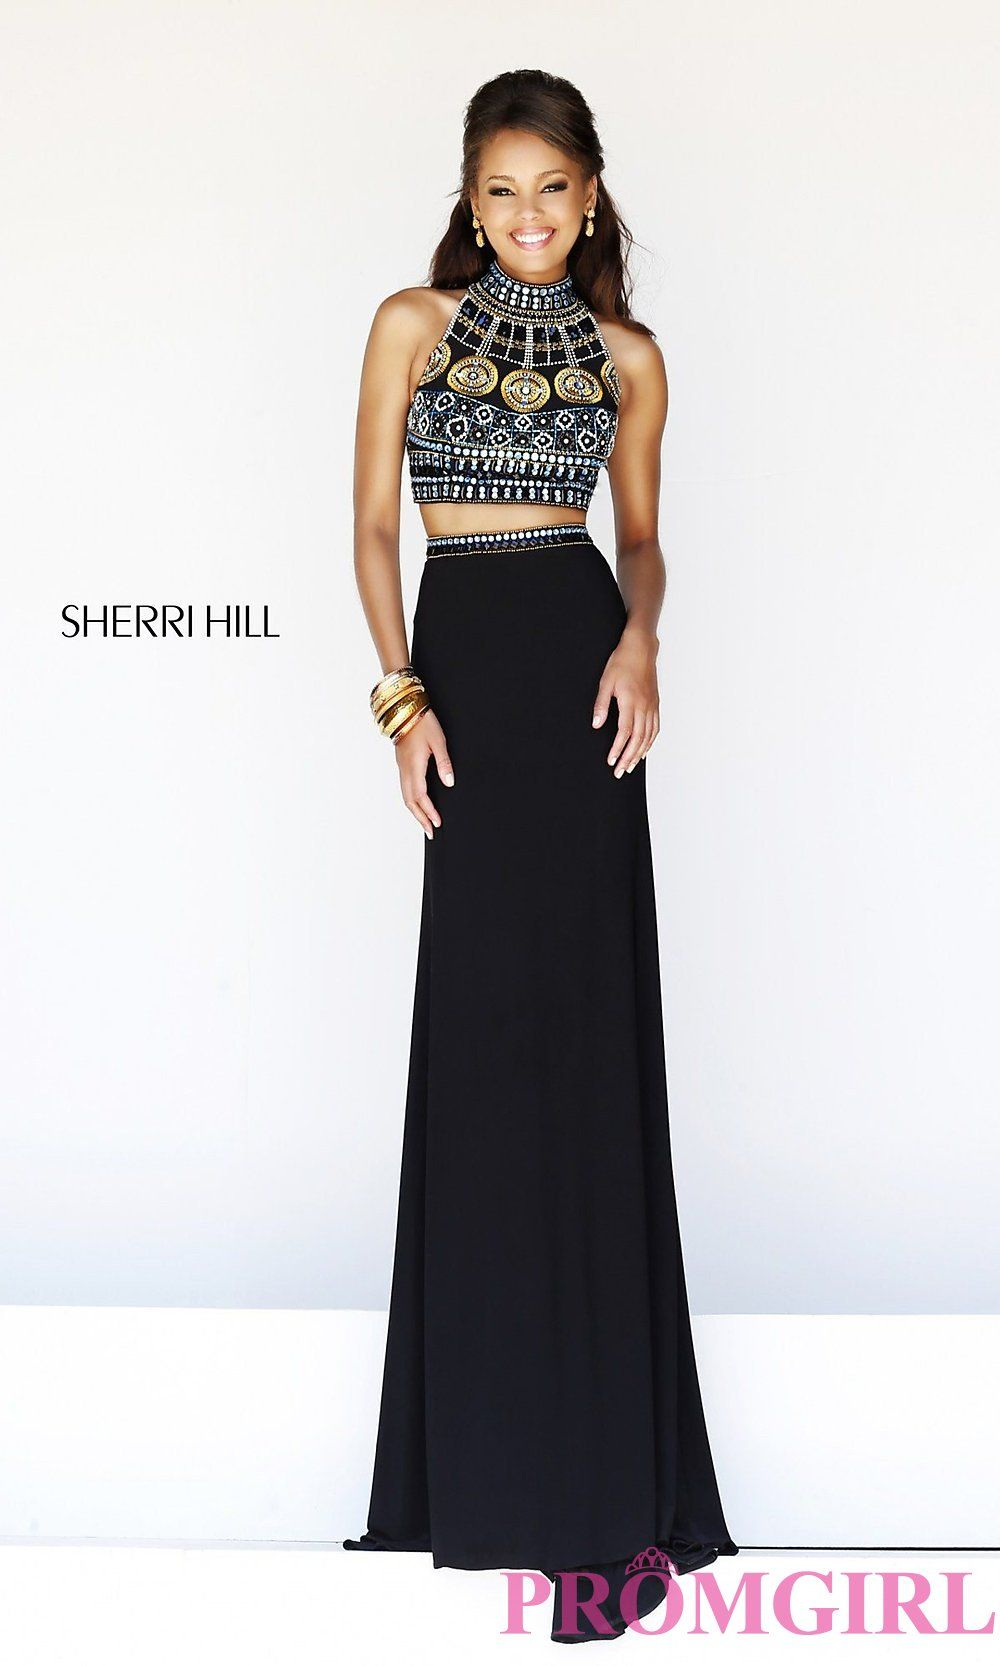 Sherri hill beaded two piece prom dress crop top gowns promgirl